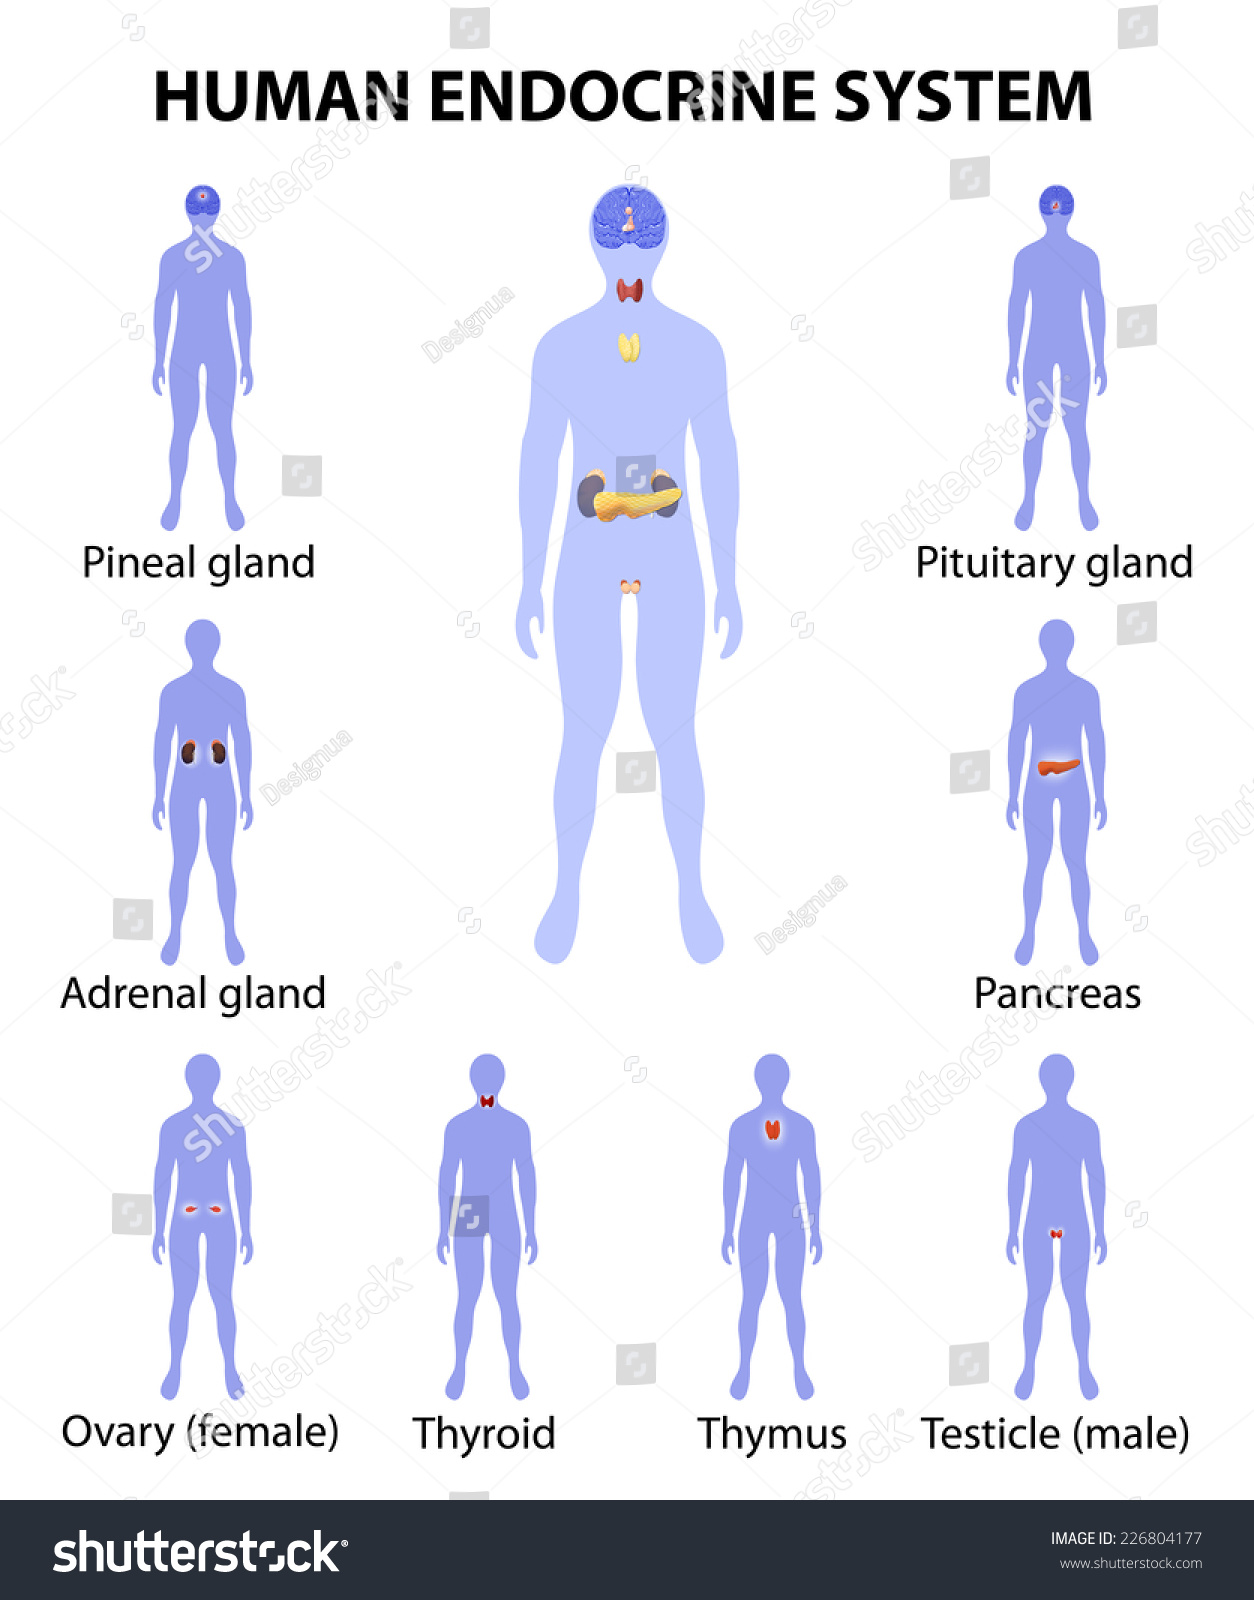 physioex 8 0 review sheet endocrine system Free essay: physioex 90 review sheet exercise 4 endocrine system physiology name laura bauer lab time/date thursday 5:30-7:30 activity 1 metabolism and.